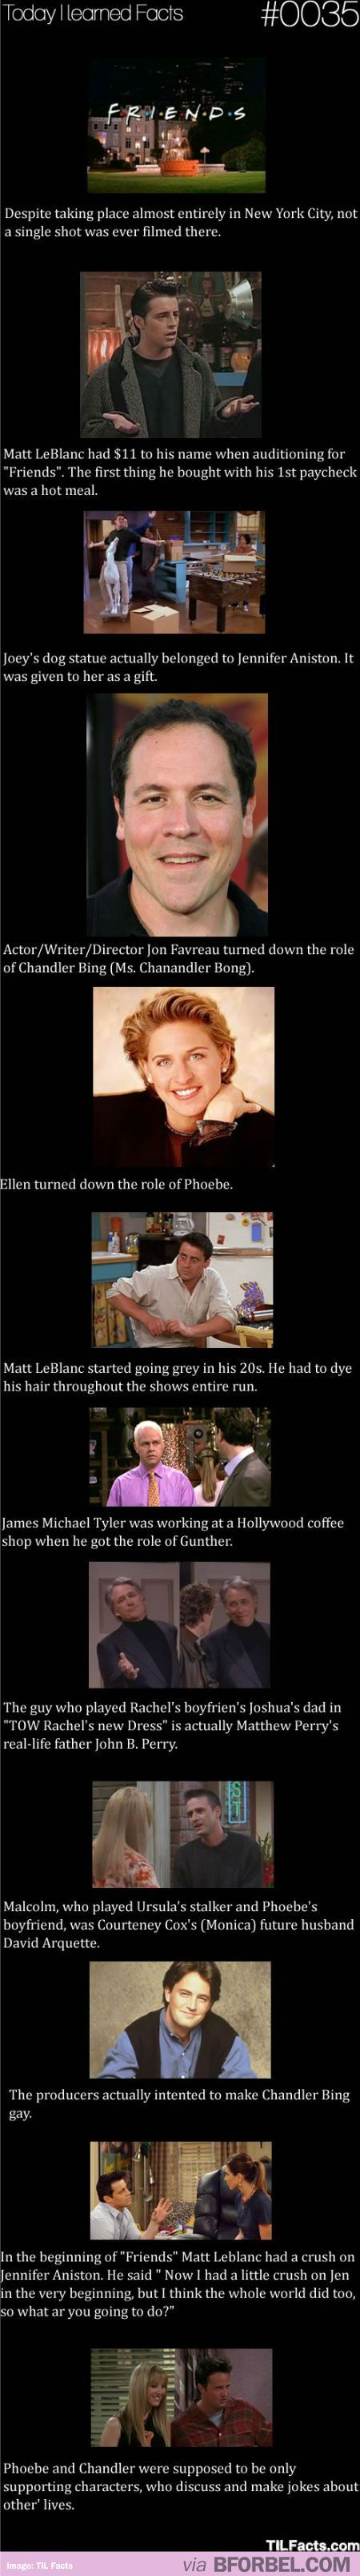 12 Facts About Friends. Love friends, long live the boxset!!